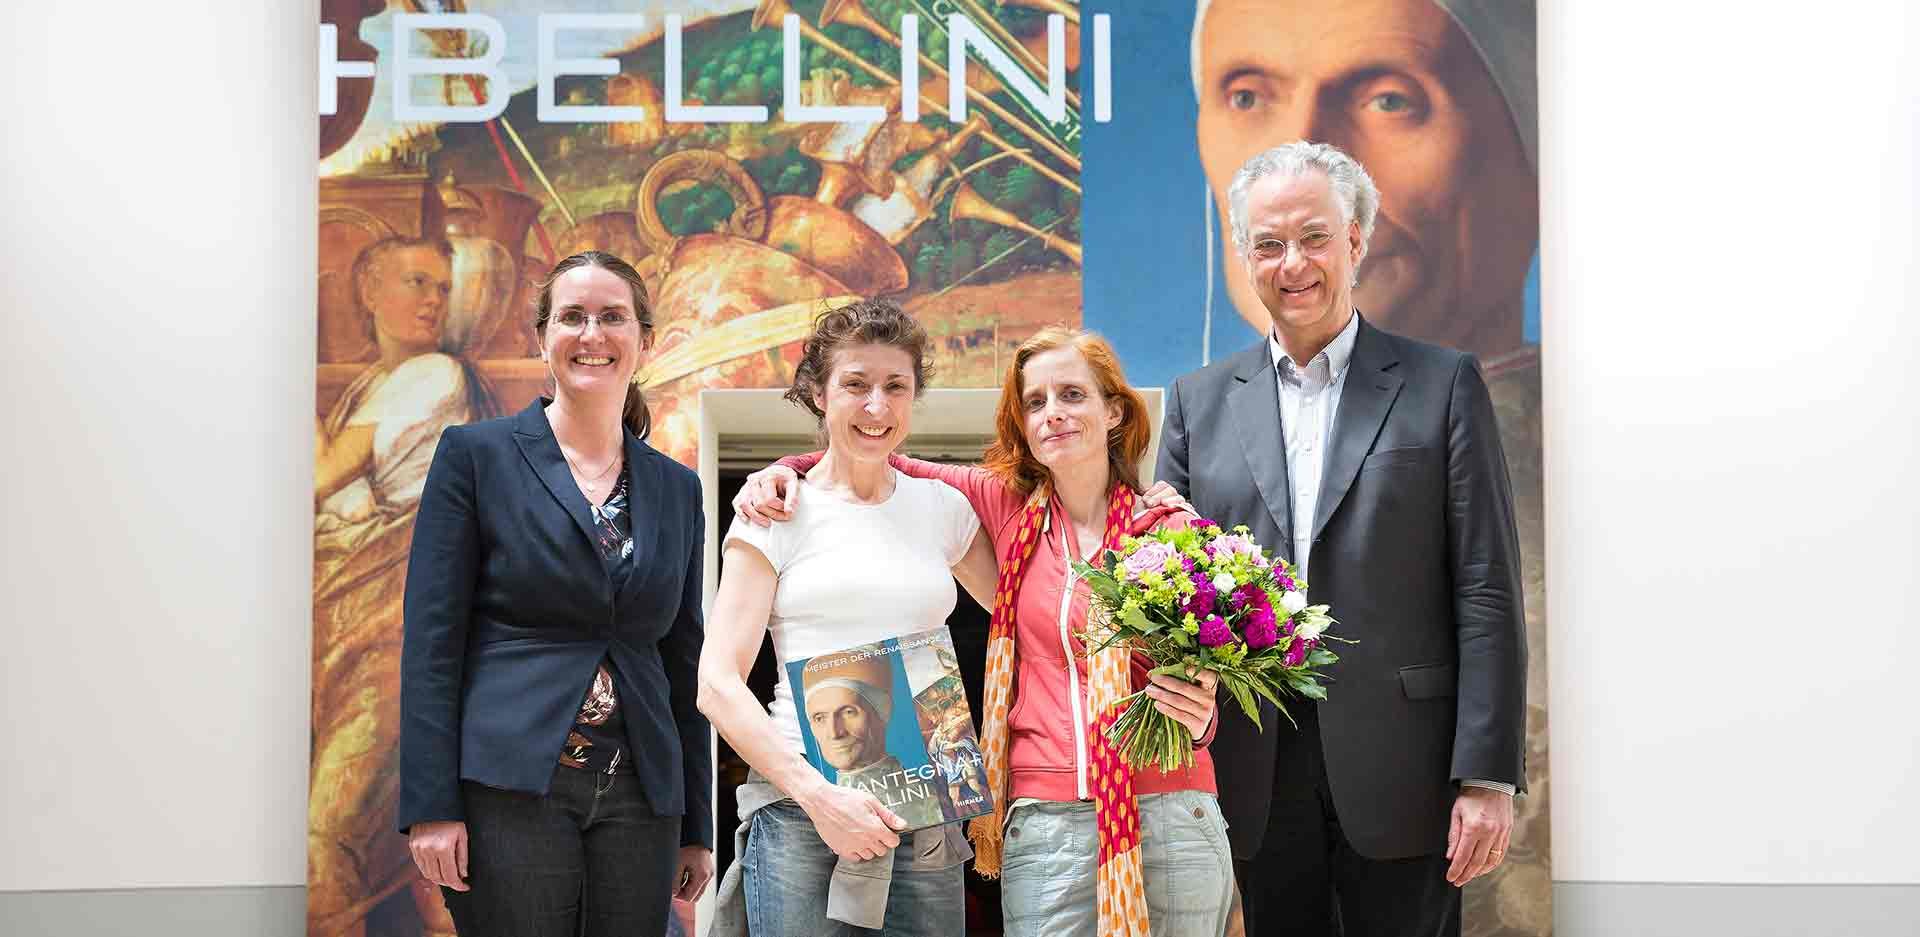 Michael Eissenhauer, General Director of the Staatliche Museen zu Berlin and Director of the Gemäldegalerie and Skulpturensammlung (right), and Dagmar Korbacher, curator (left), greet the 100,000th visitor to the exhibition: Ina Röttger (2nd from left) and Florence K.(2nd from right)